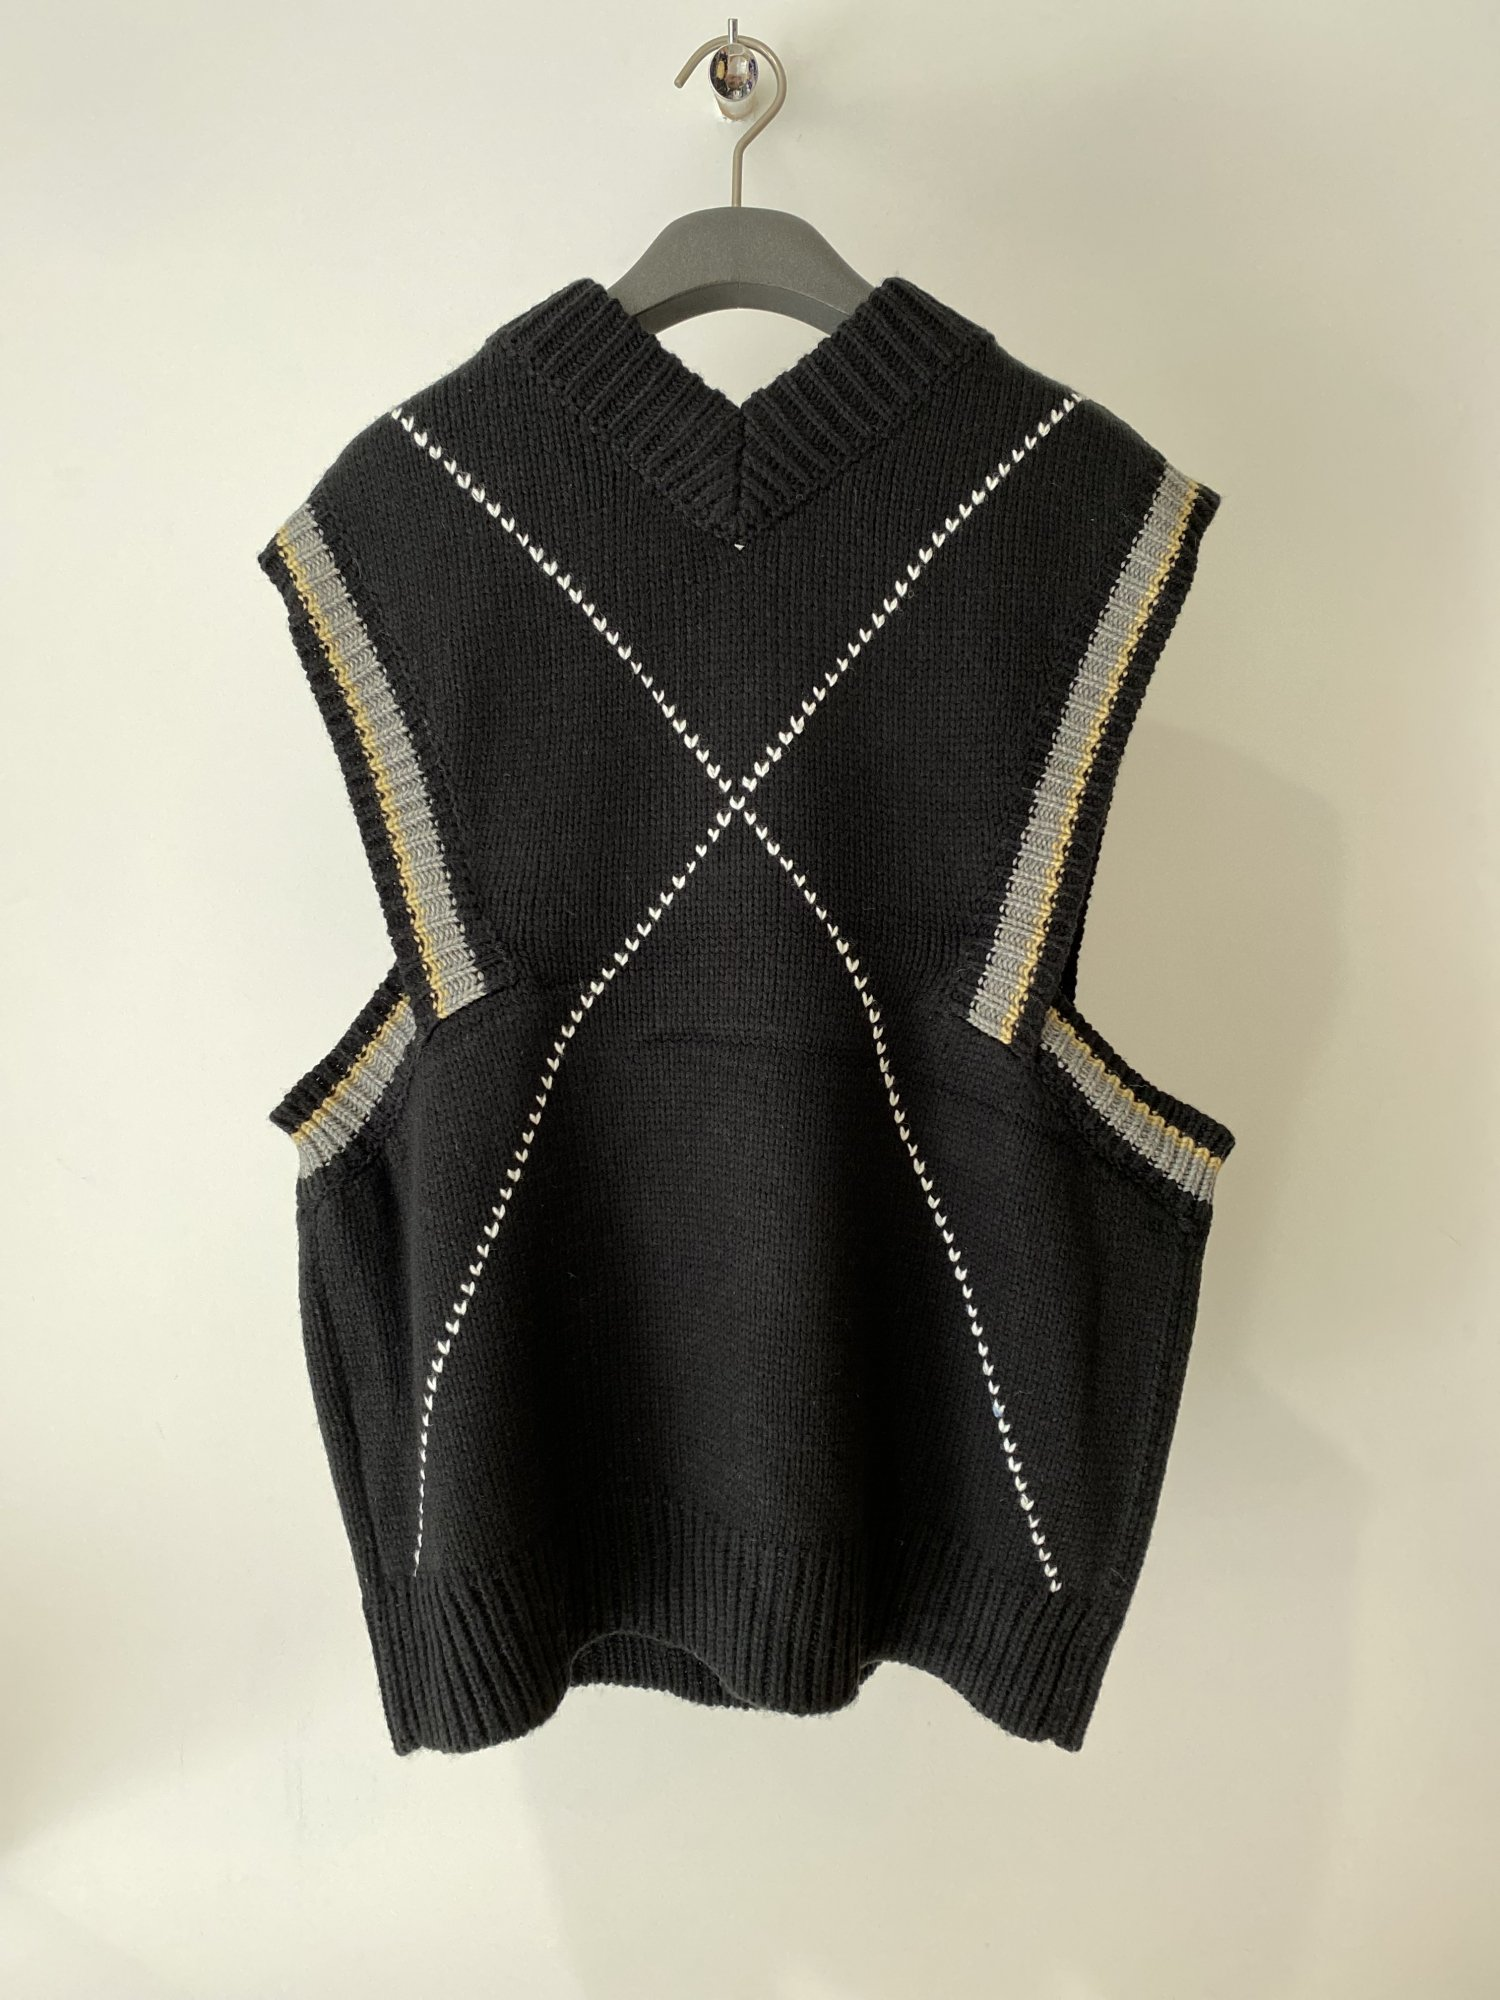 kudos<br />HEART CROSS KNIT VEST / BLACK<img class='new_mark_img2' src='https://img.shop-pro.jp/img/new/icons14.gif' style='border:none;display:inline;margin:0px;padding:0px;width:auto;' />